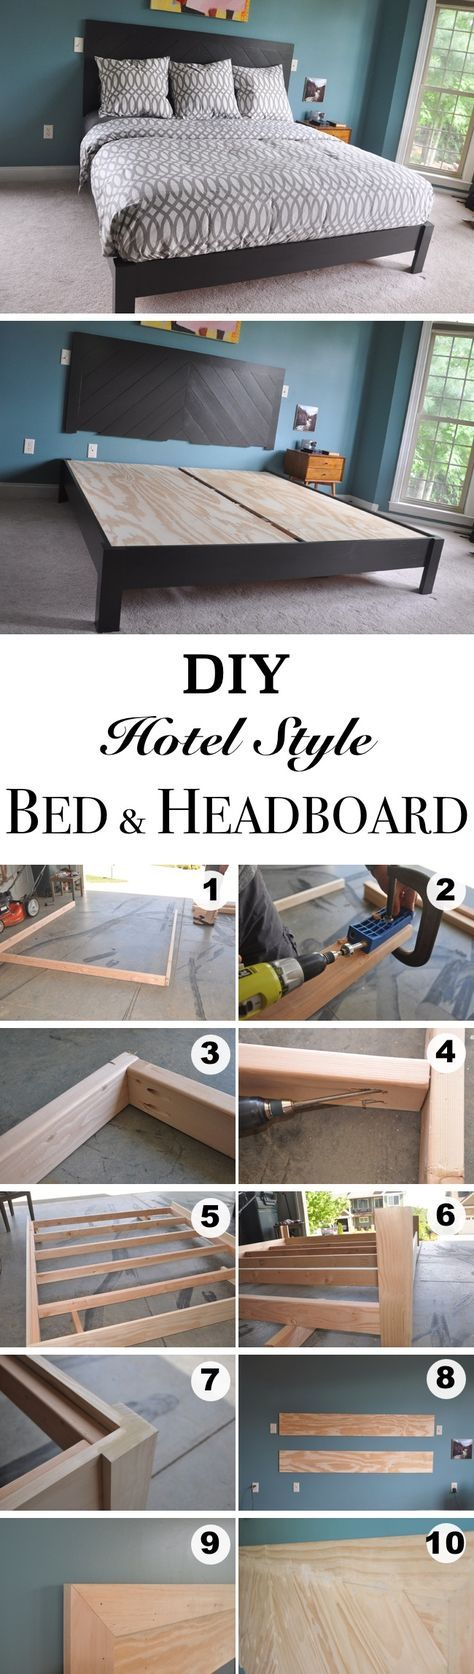 25+ best ideas about Pallet bed frames on Pinterest | Diy ...